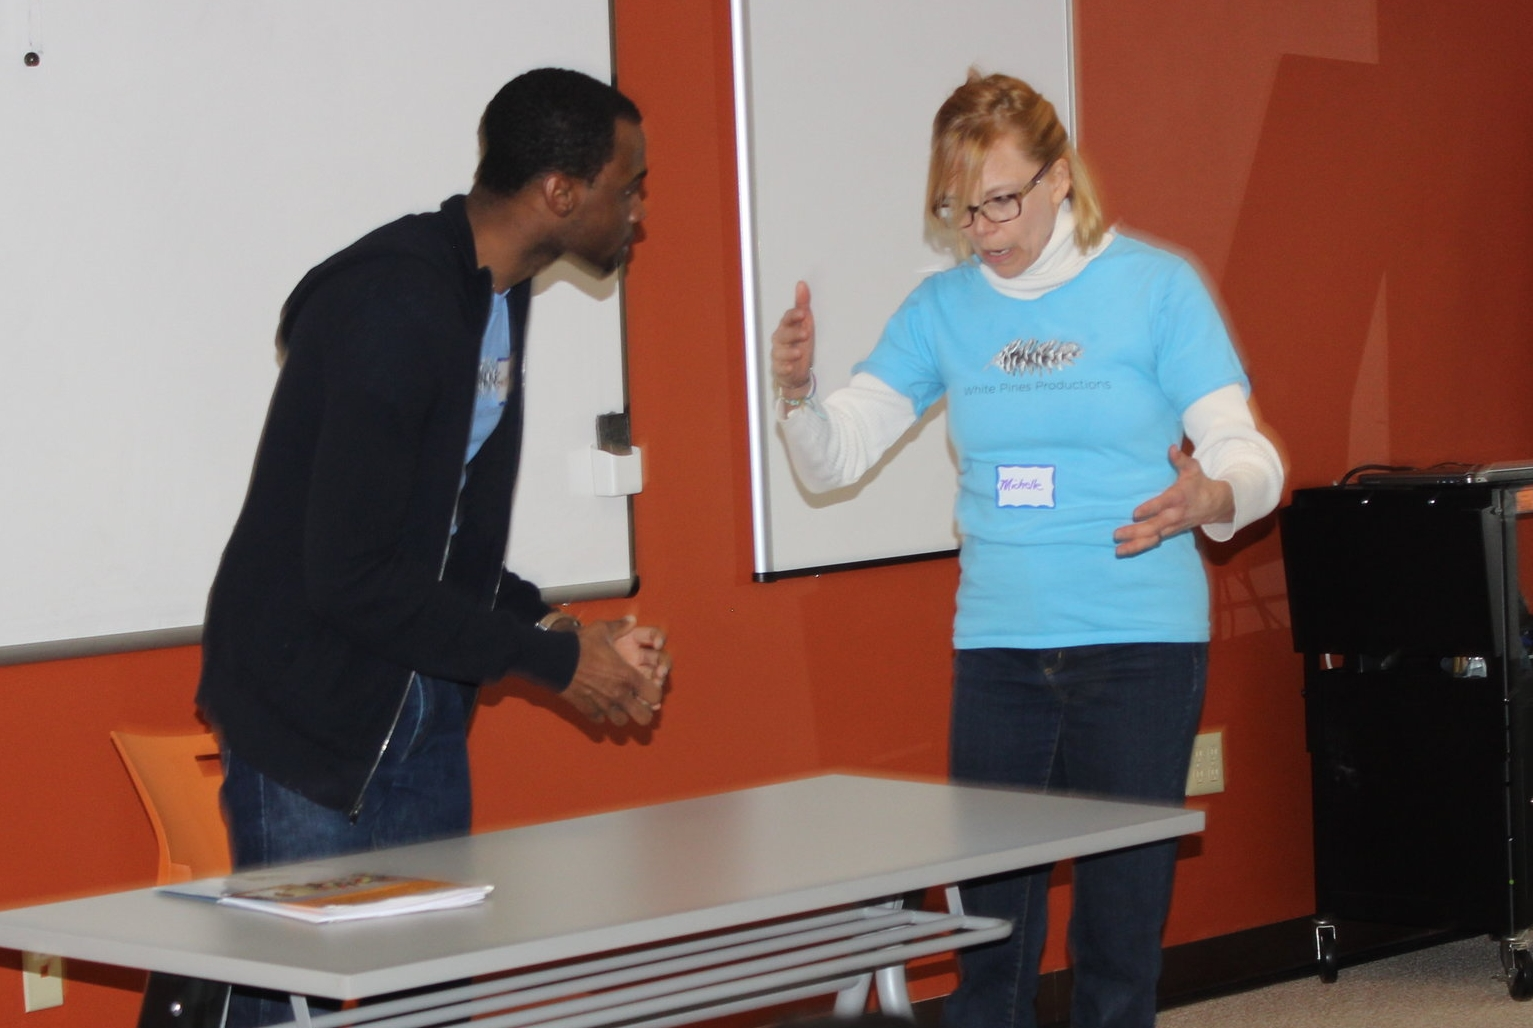 Gavin Whitt and Michelle Pauls perform a scenario for University City District.